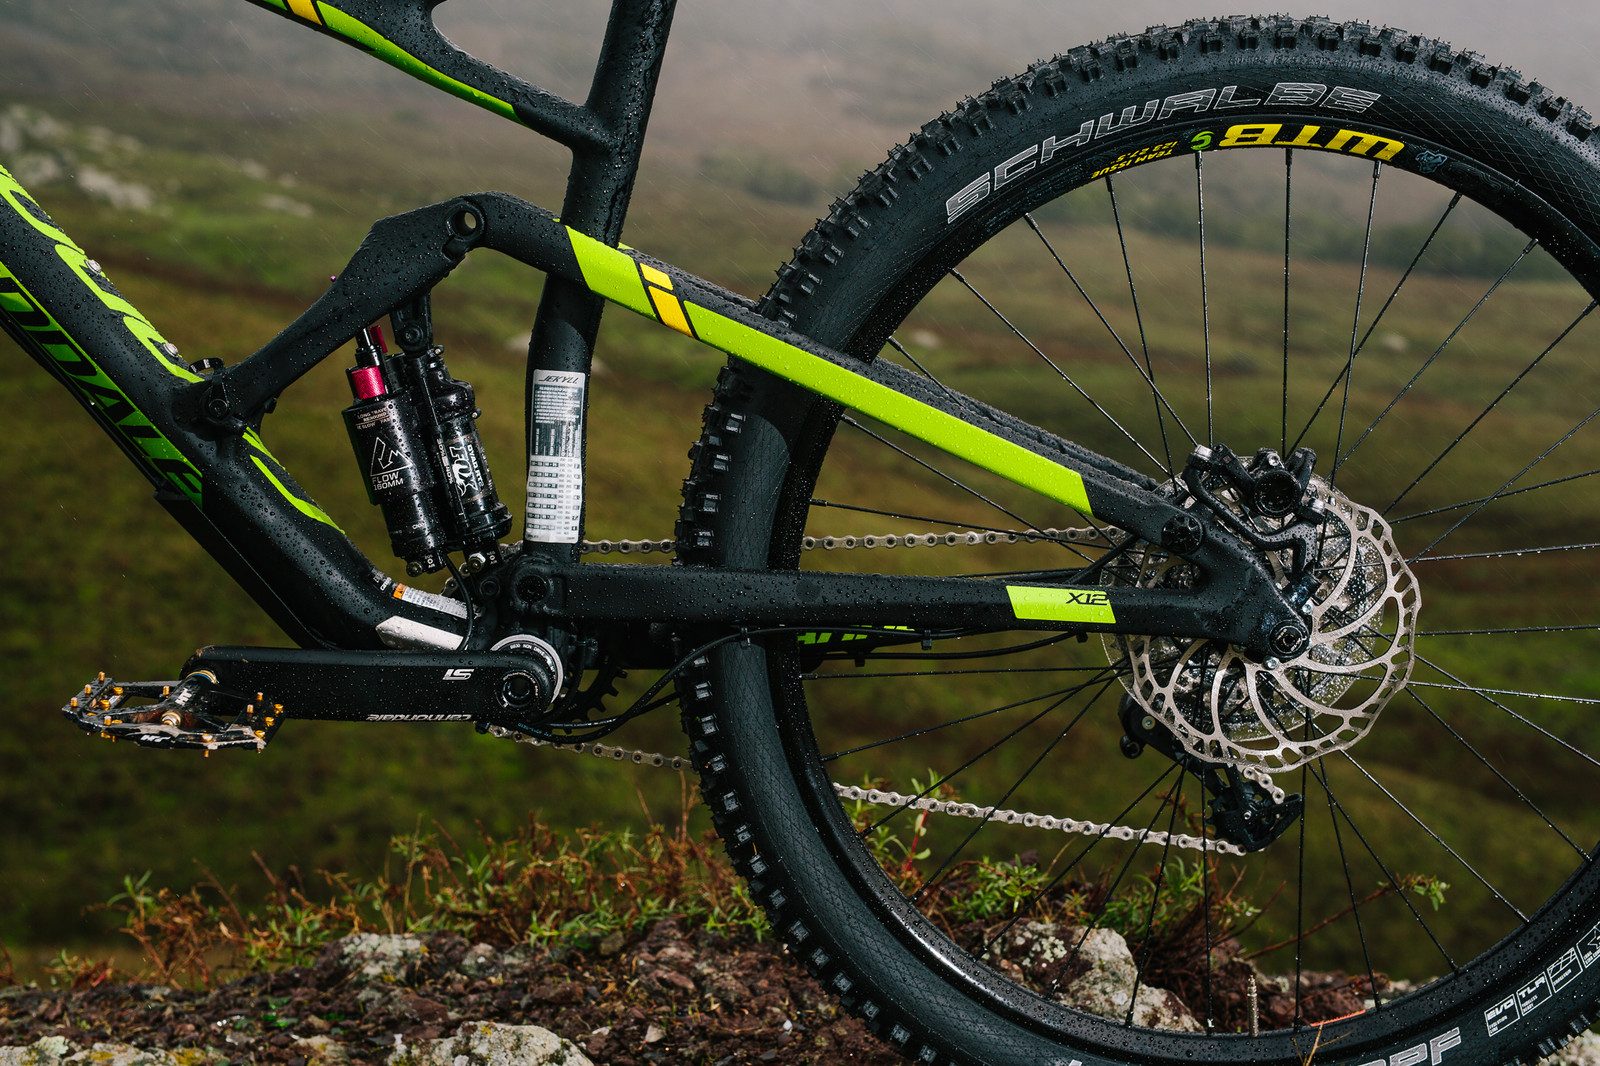 ee7f1014012 2015 Cannondale Jekyll 27.5 Carbon Team - Reviews, Comparisons ...